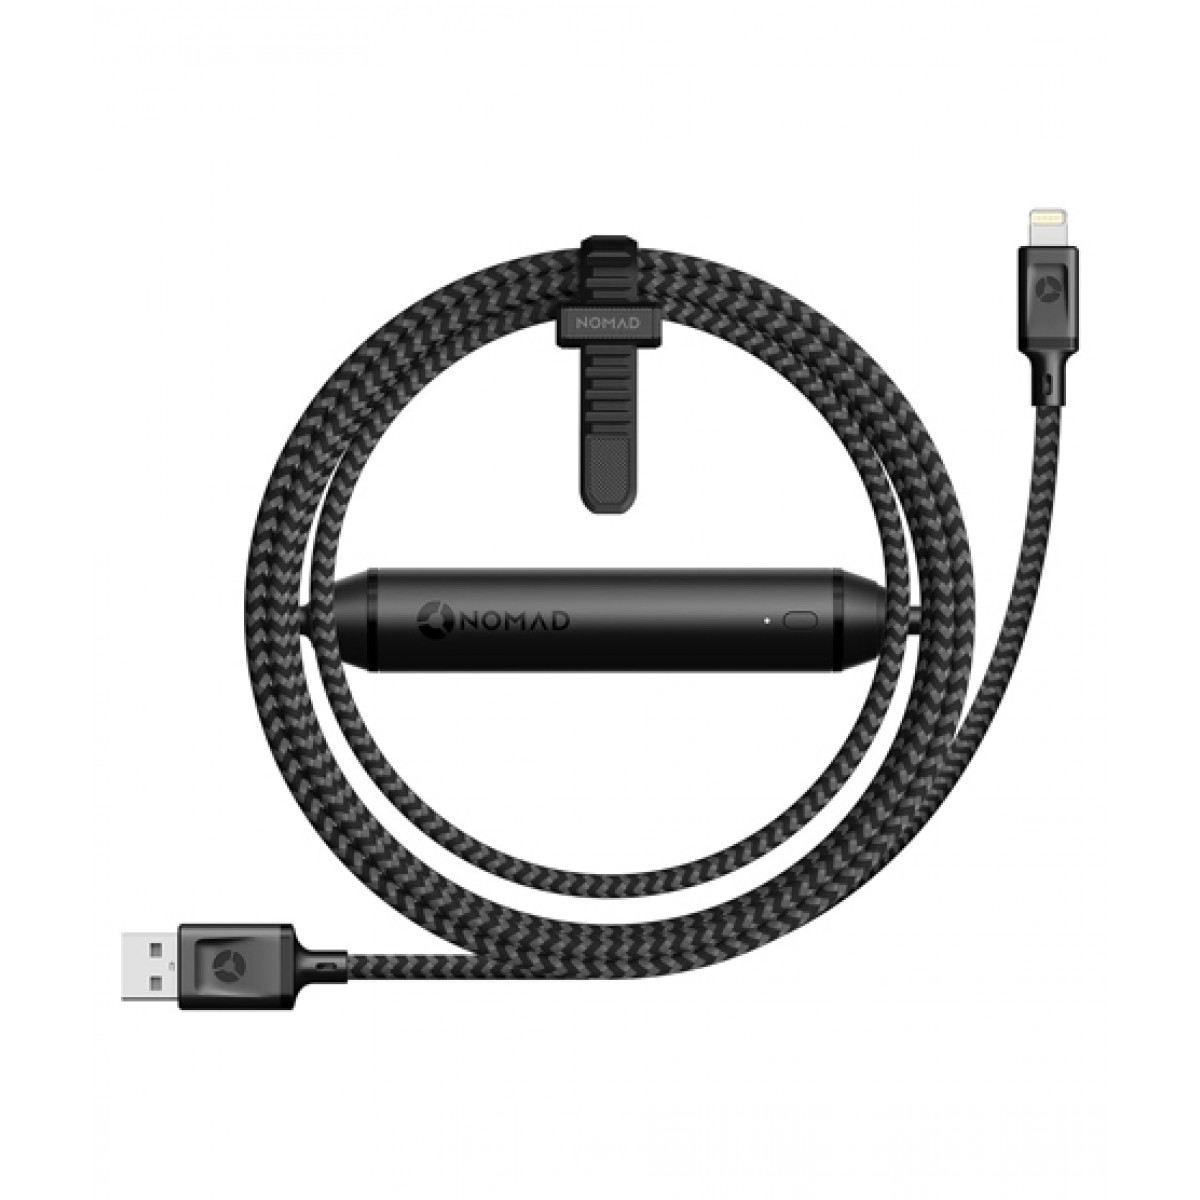 Nomad 2350mAh Lightning Battery Cable - 1.5M